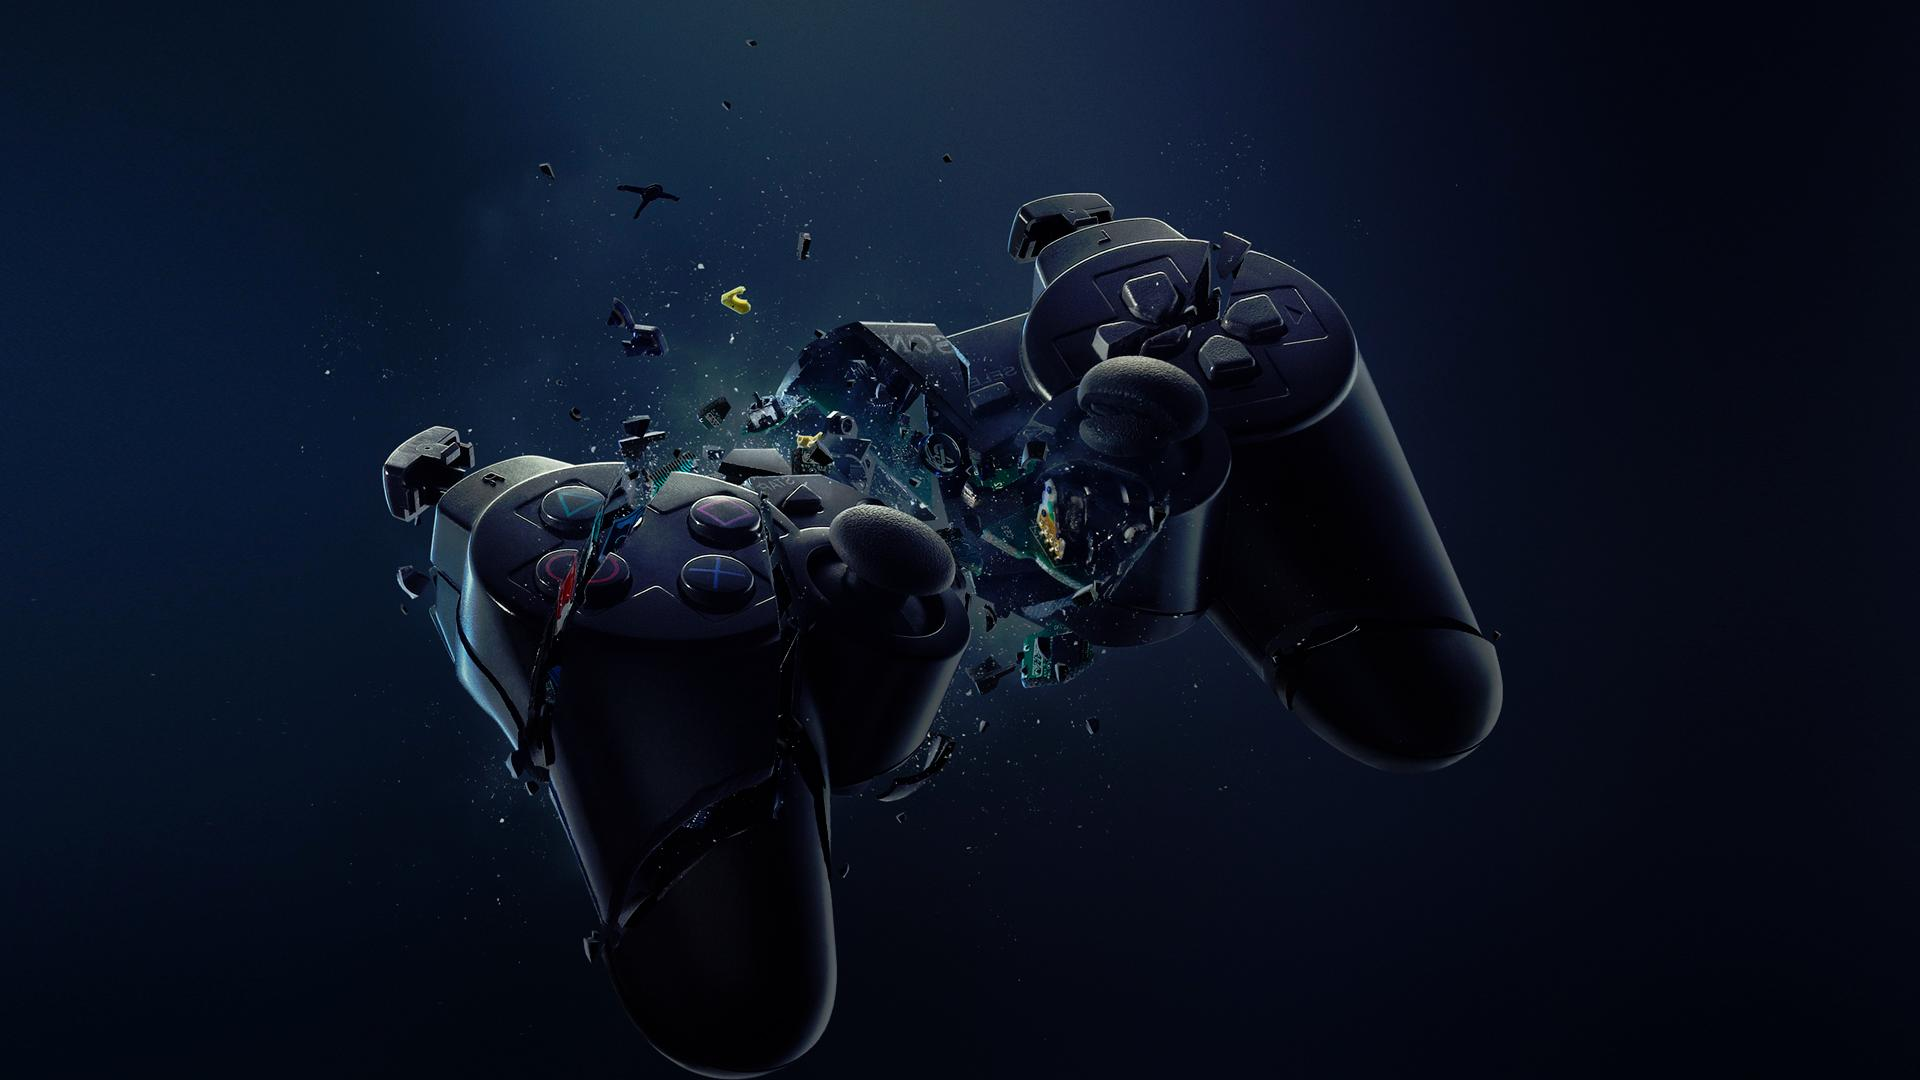 Ps3 Games Wallpapers 4659 Hd Wallpapers in Games   Imagescicom 1920x1080